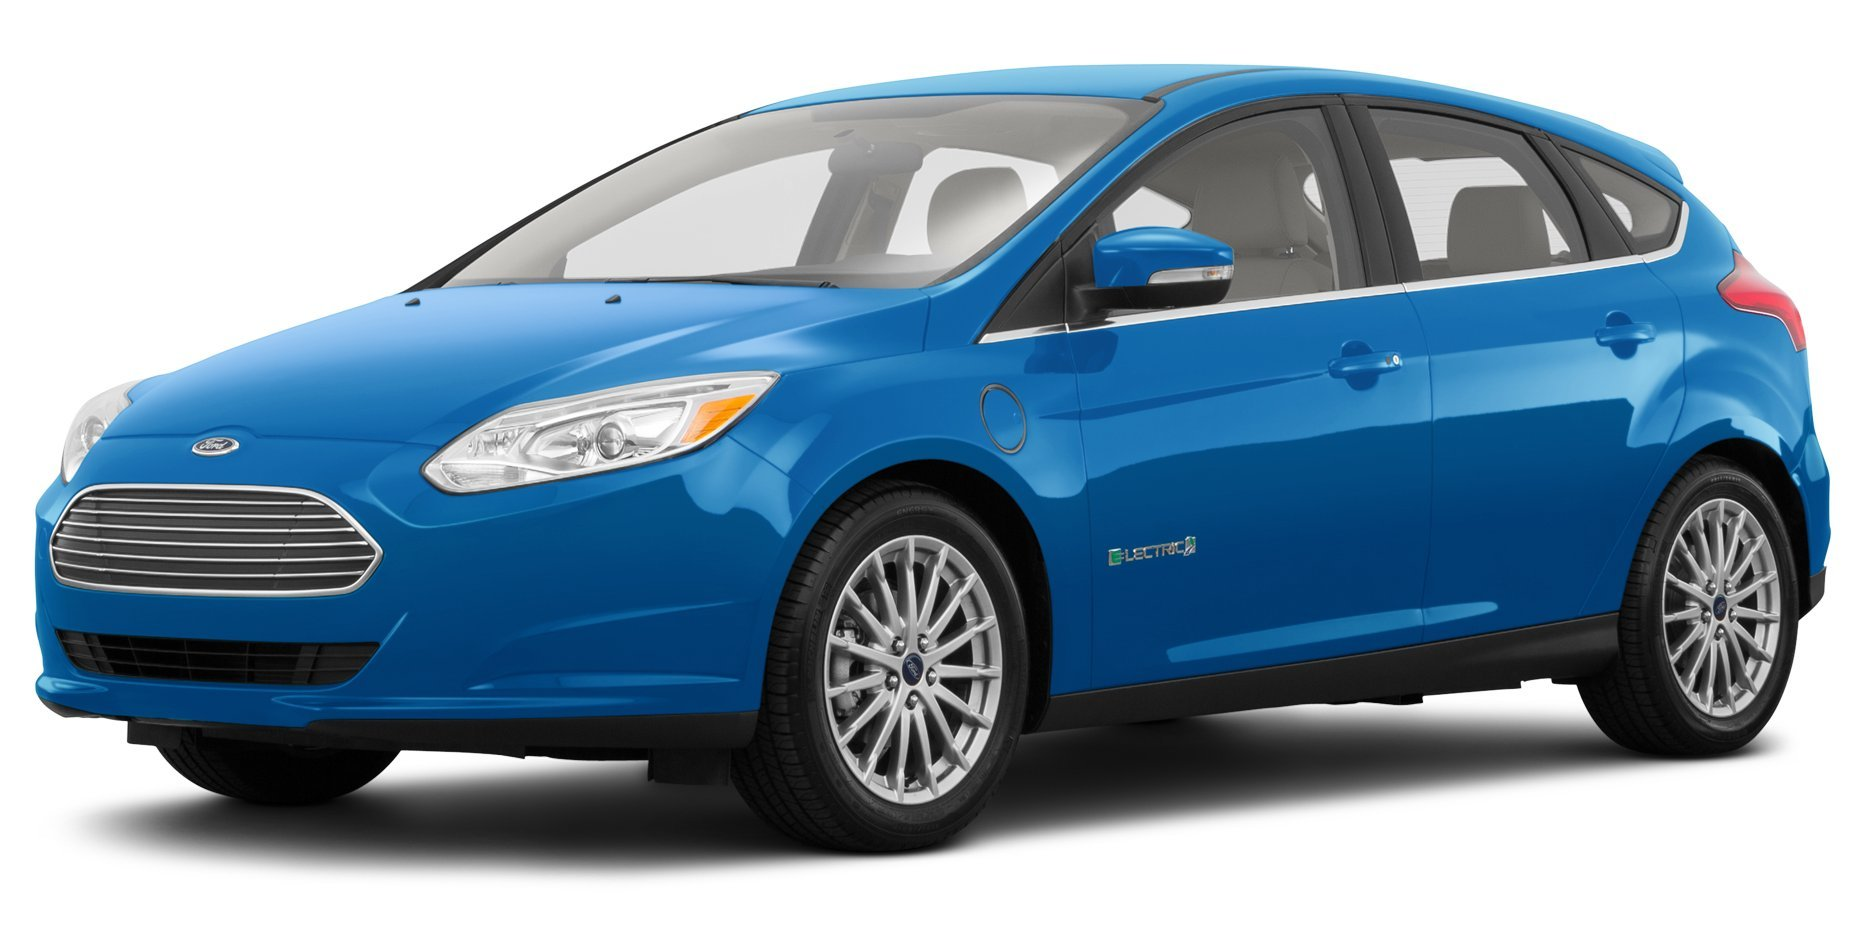 2017 ford focus reviews images and specs vehicles. Black Bedroom Furniture Sets. Home Design Ideas